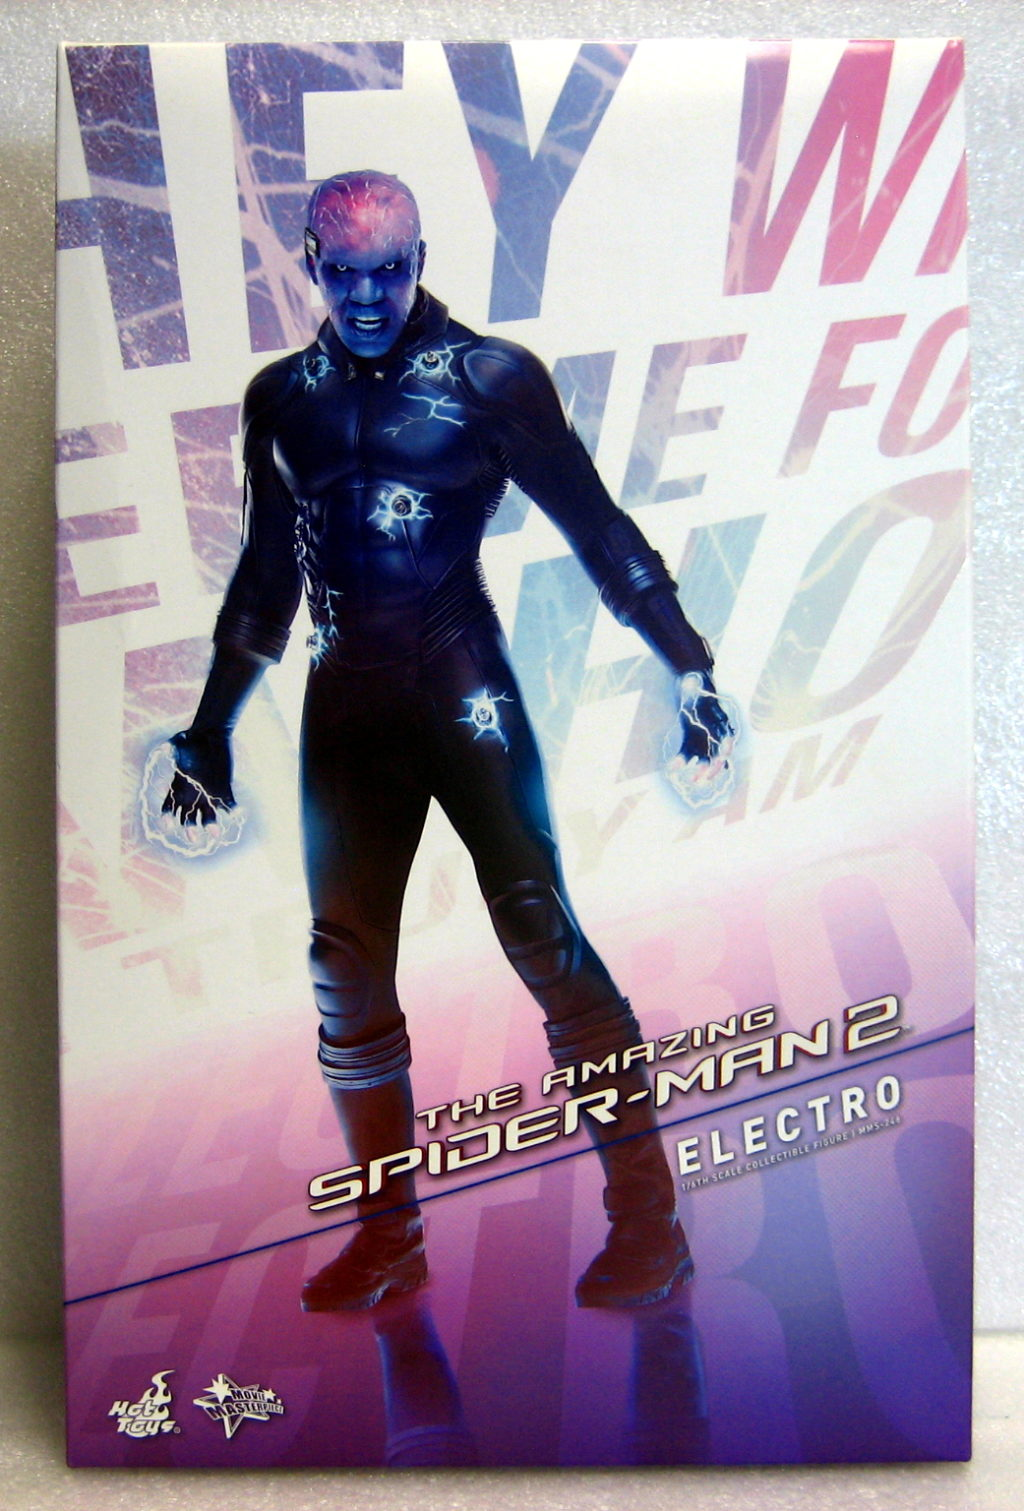 hot toys amazing spider-man 2 electro box front